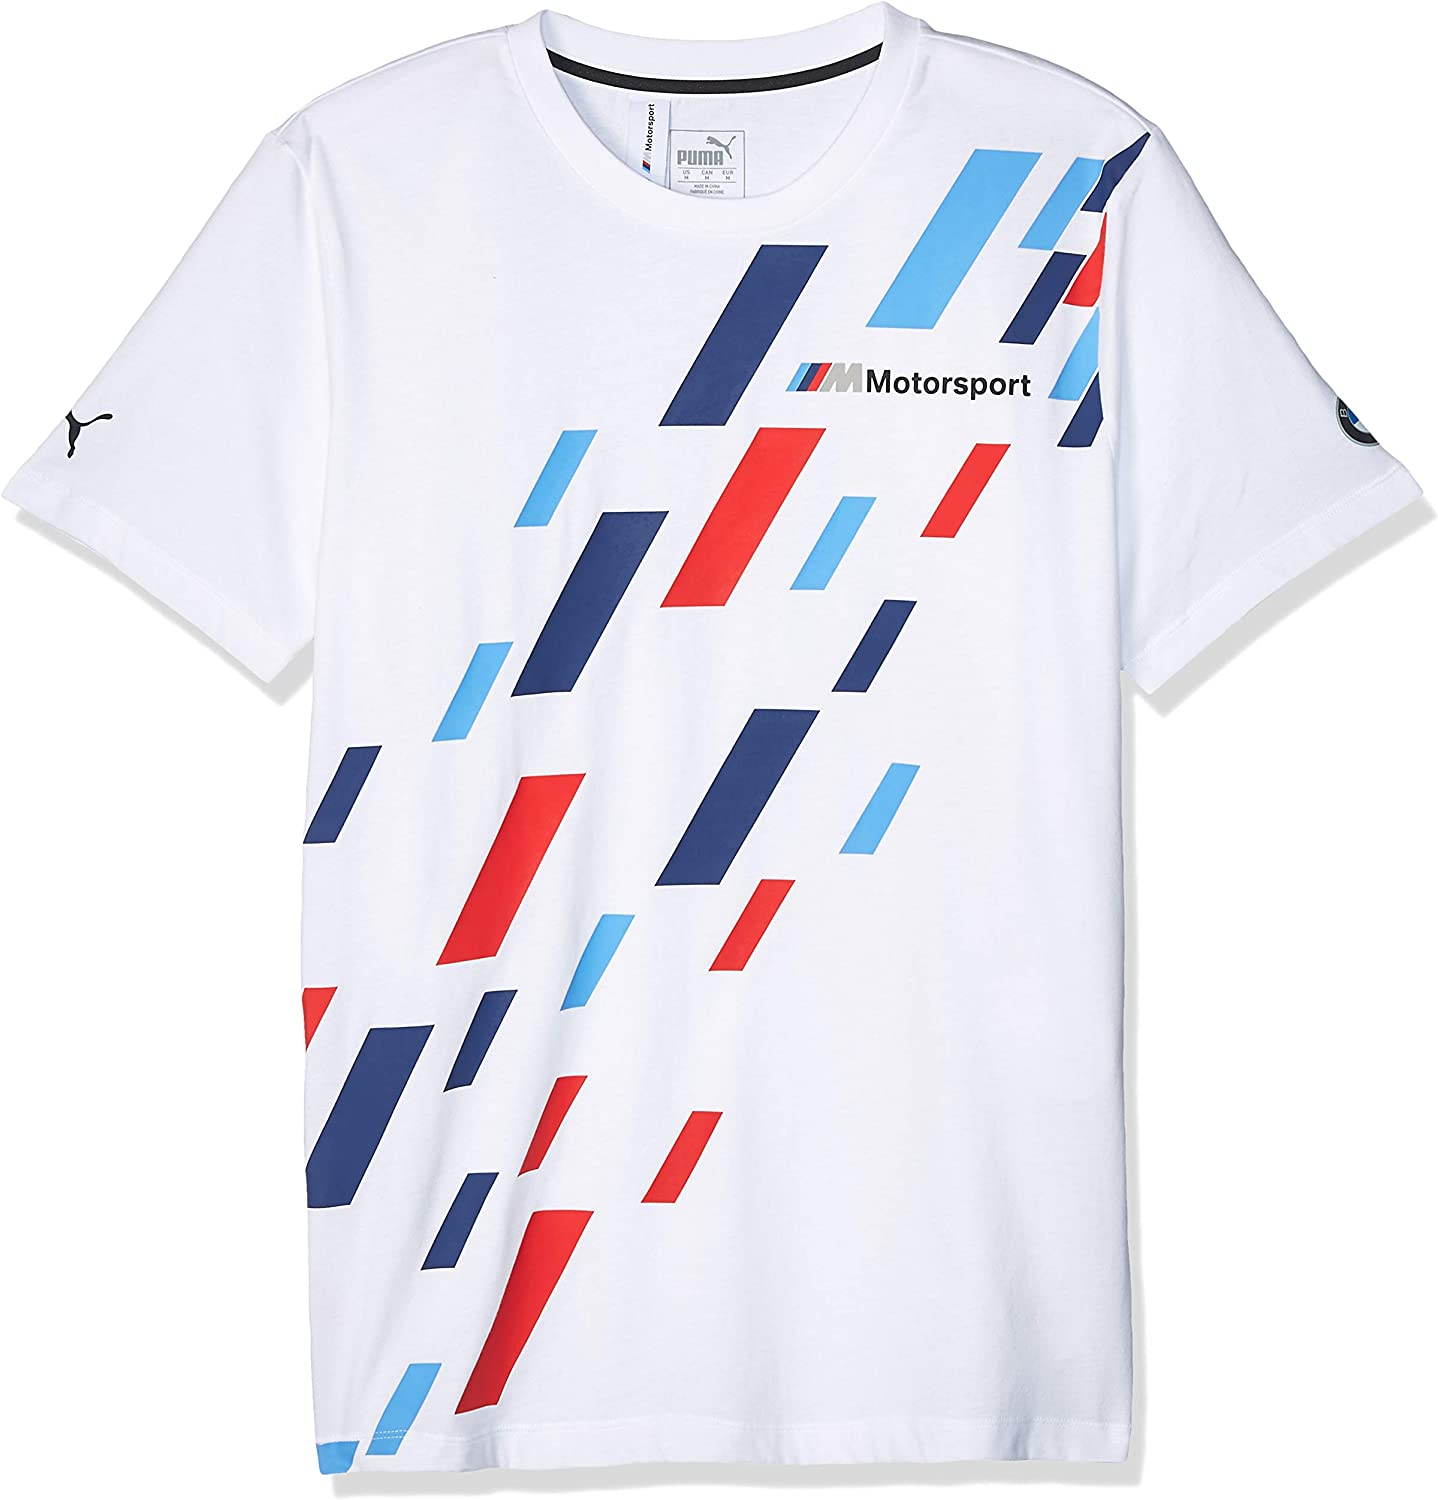 PUMA Men's BMW MMS Motorsport Graphic Tee